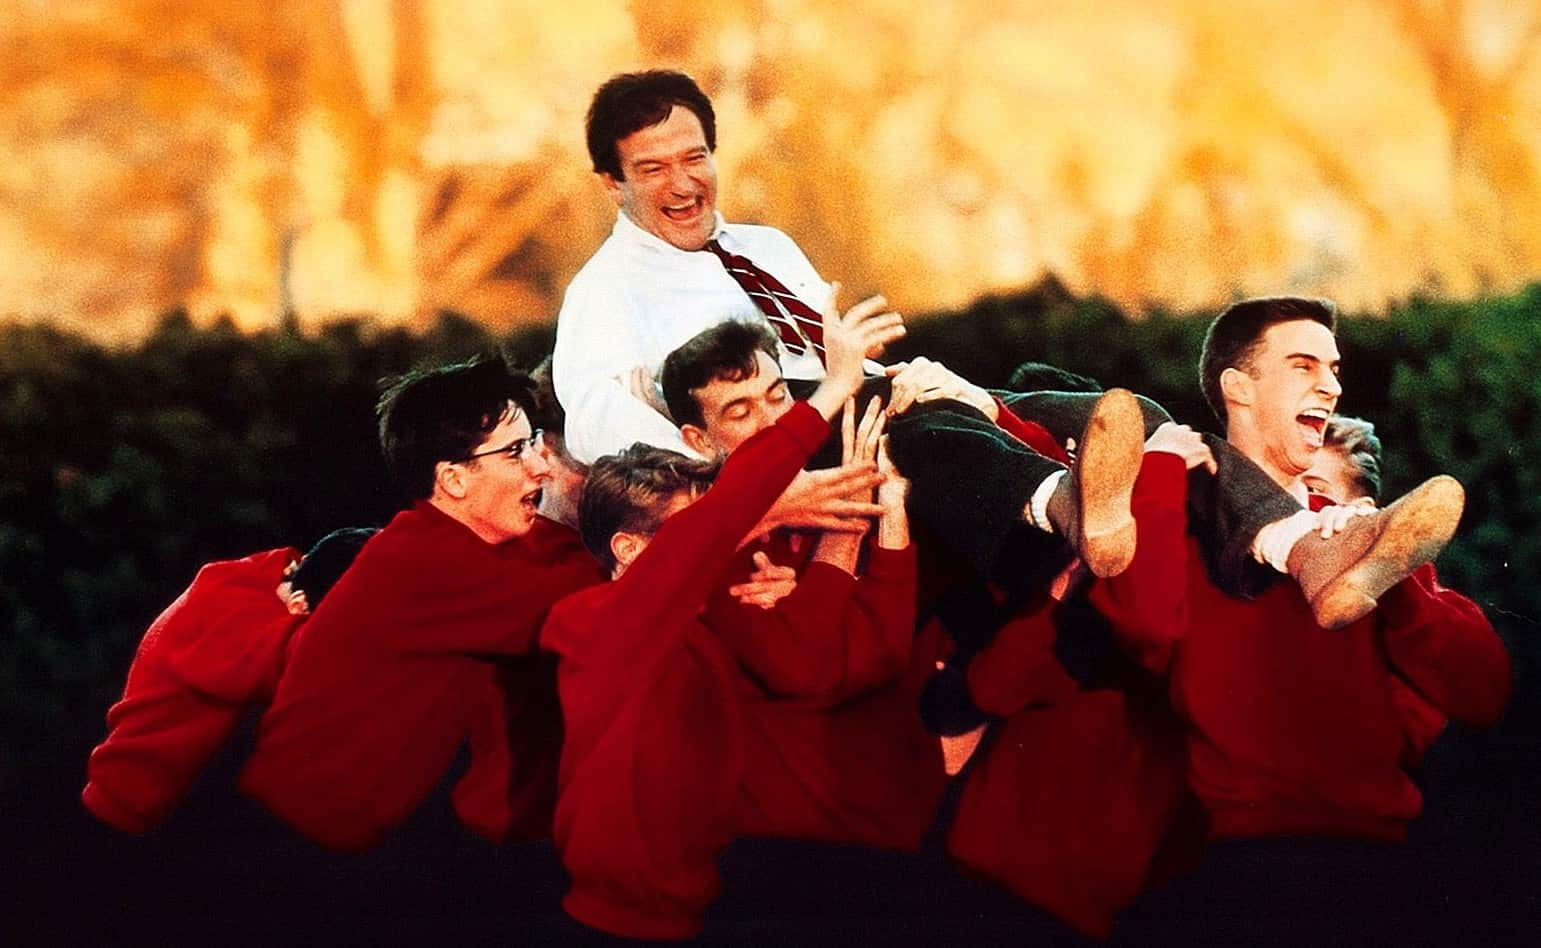 Dead Poets Society 1989 And The Lion King 1994 Film Stories